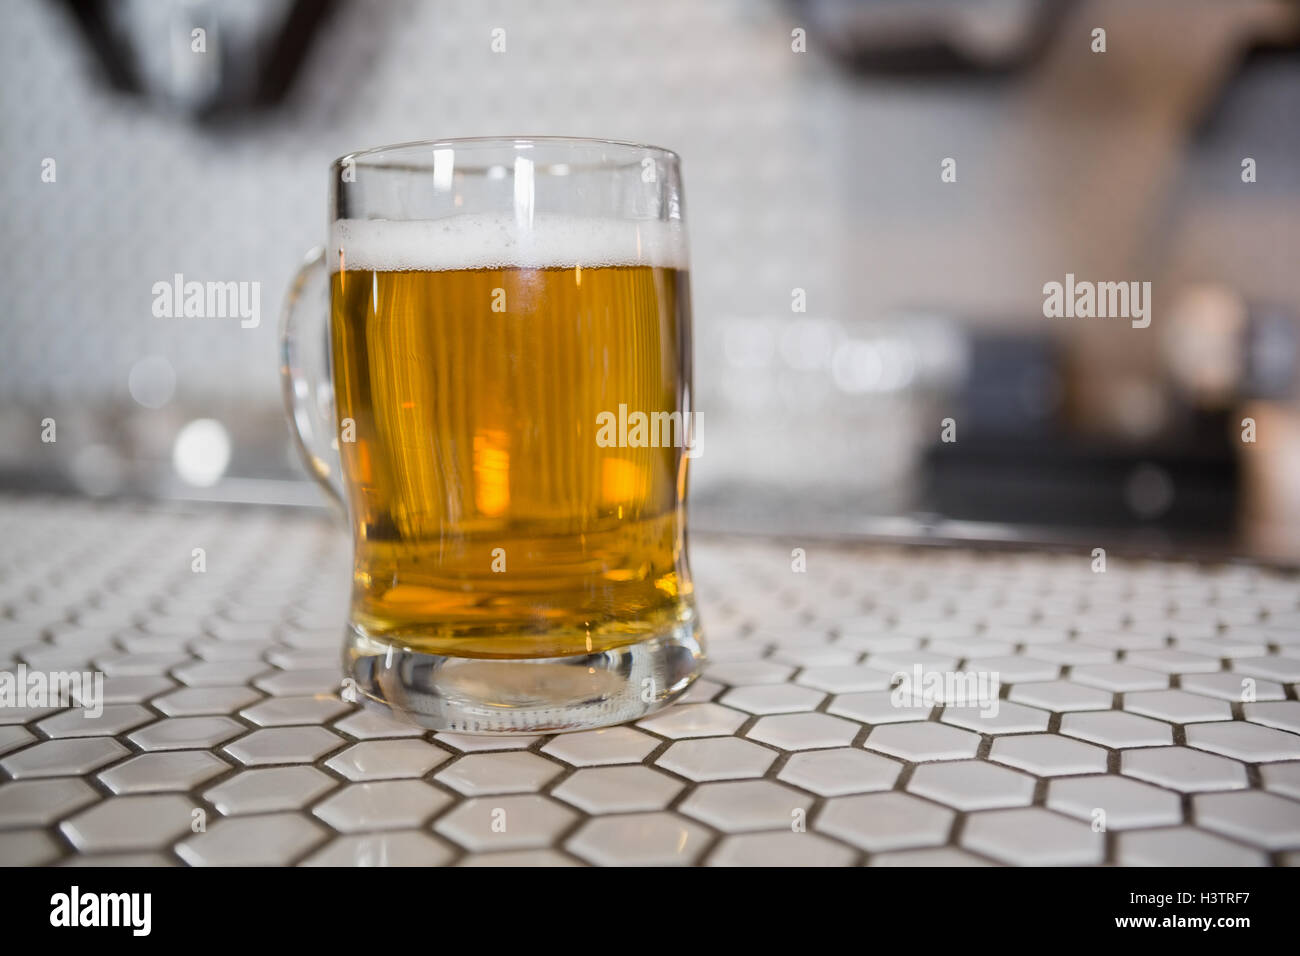 Glass of beer on bar counter - Stock Image